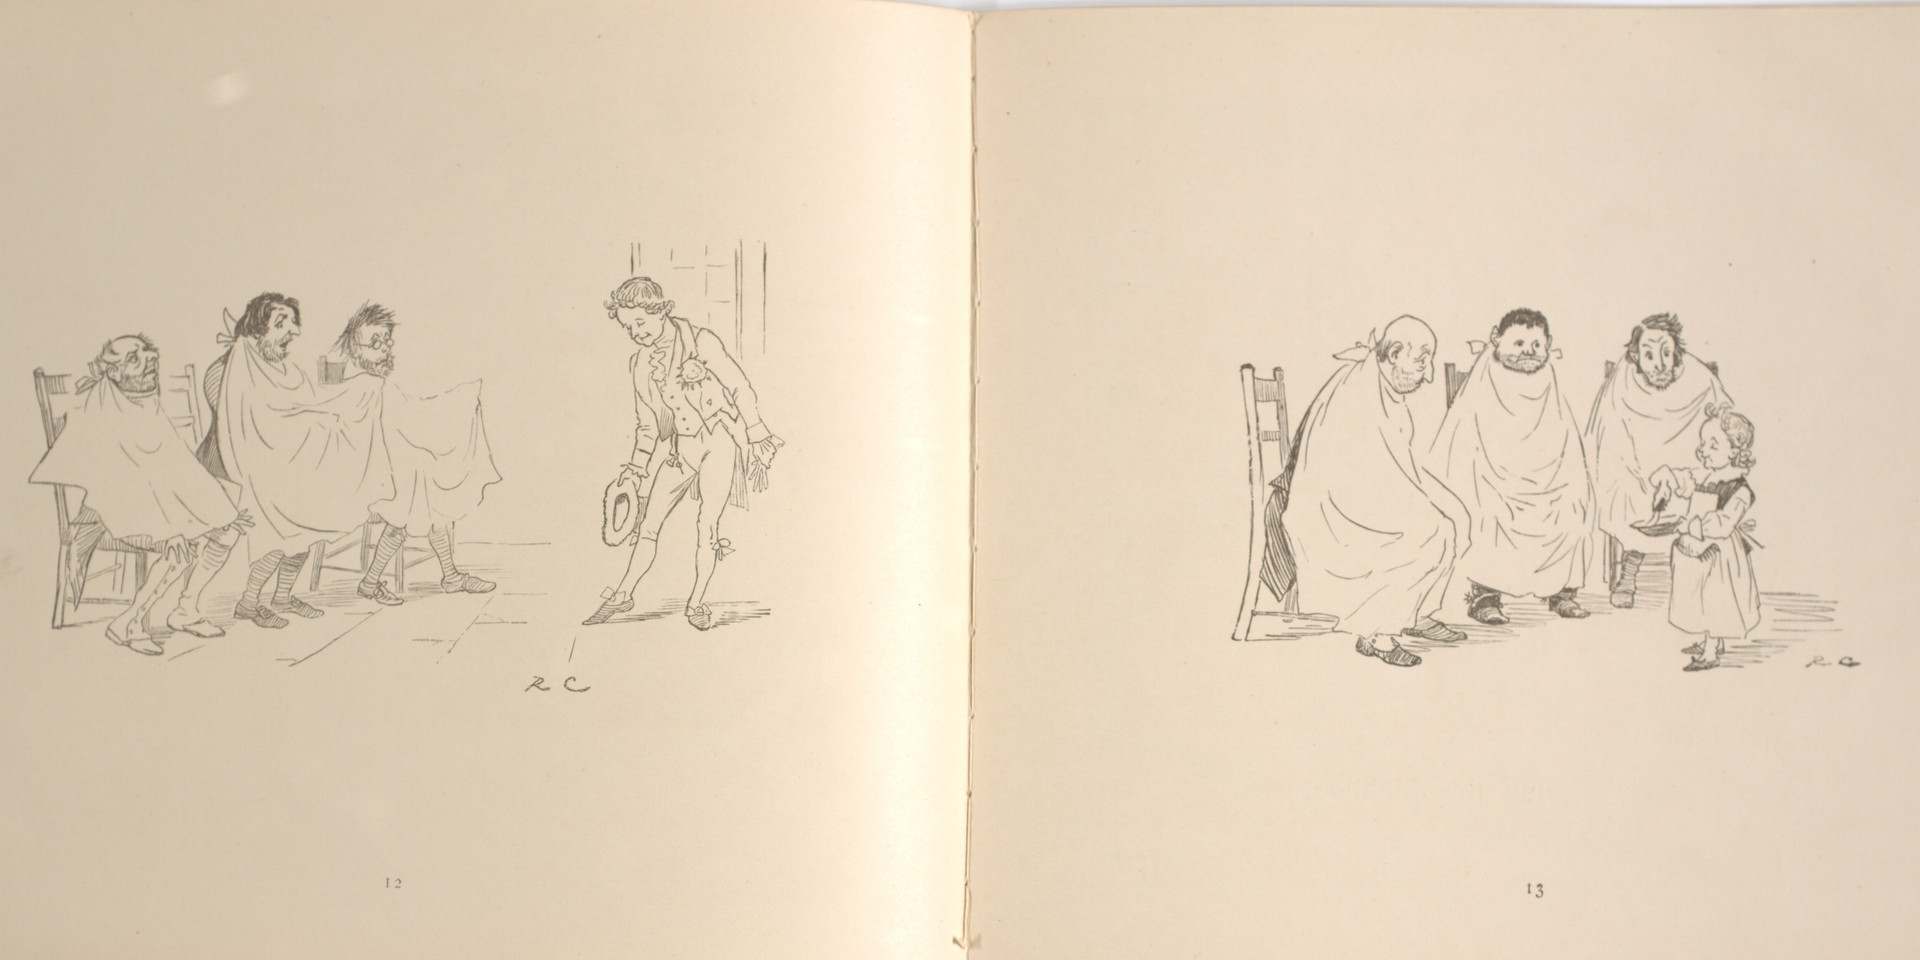 Caldecott, Randolph. The Great Panjandrum Himself. Frederick Warne & Co., 1855. p.9-10. Ryerson University Library and Archives.